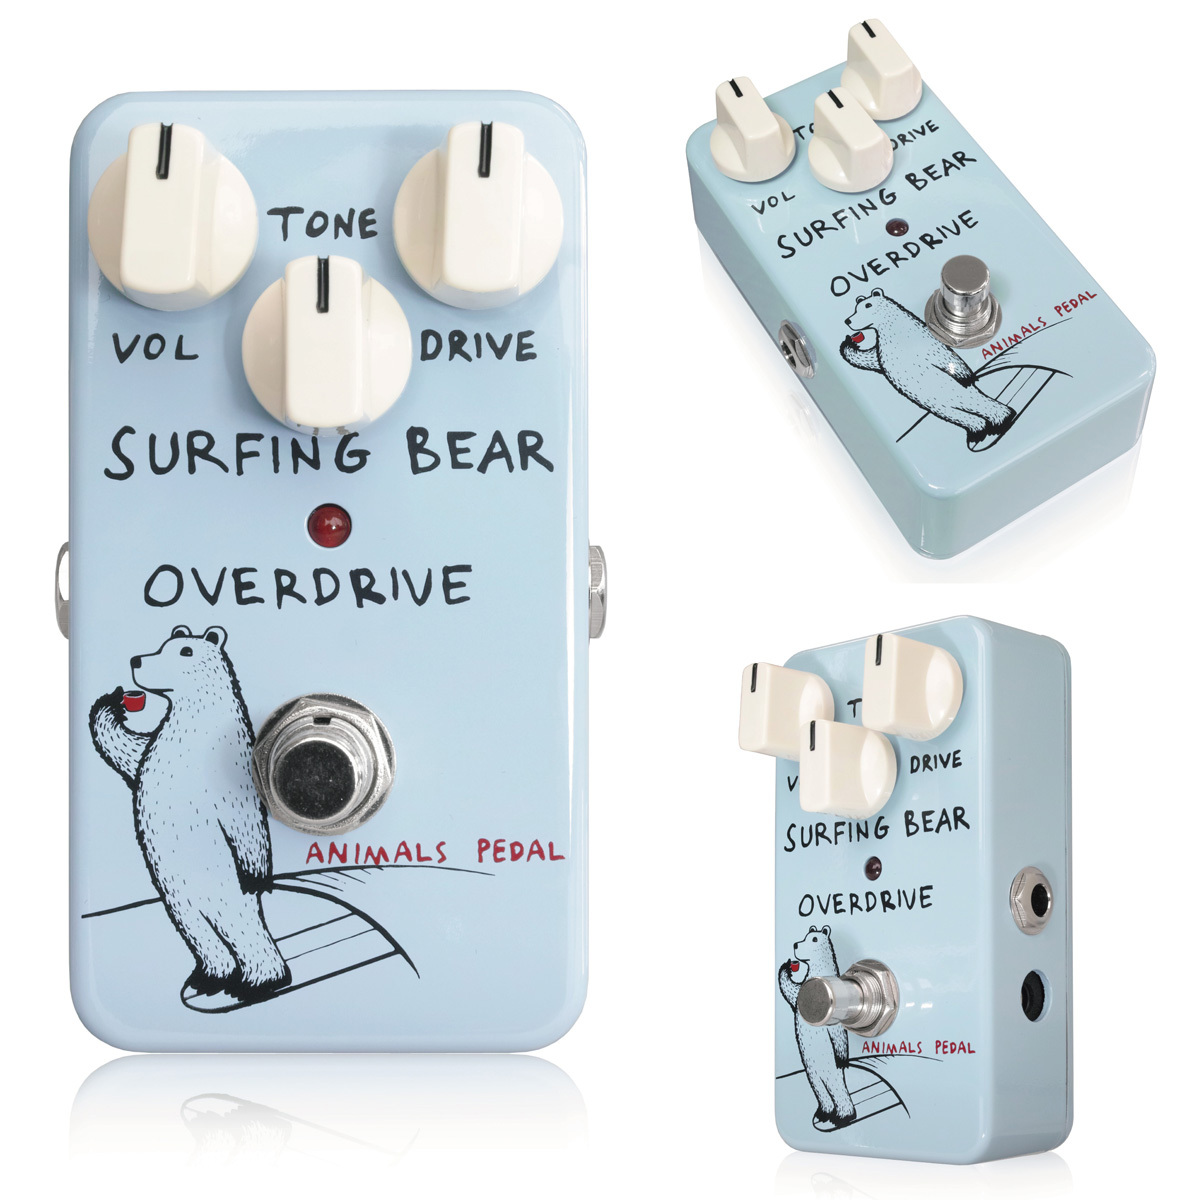 Animals Pedal Surfing Bear Overdrive オーバードライブ 【新宿店】